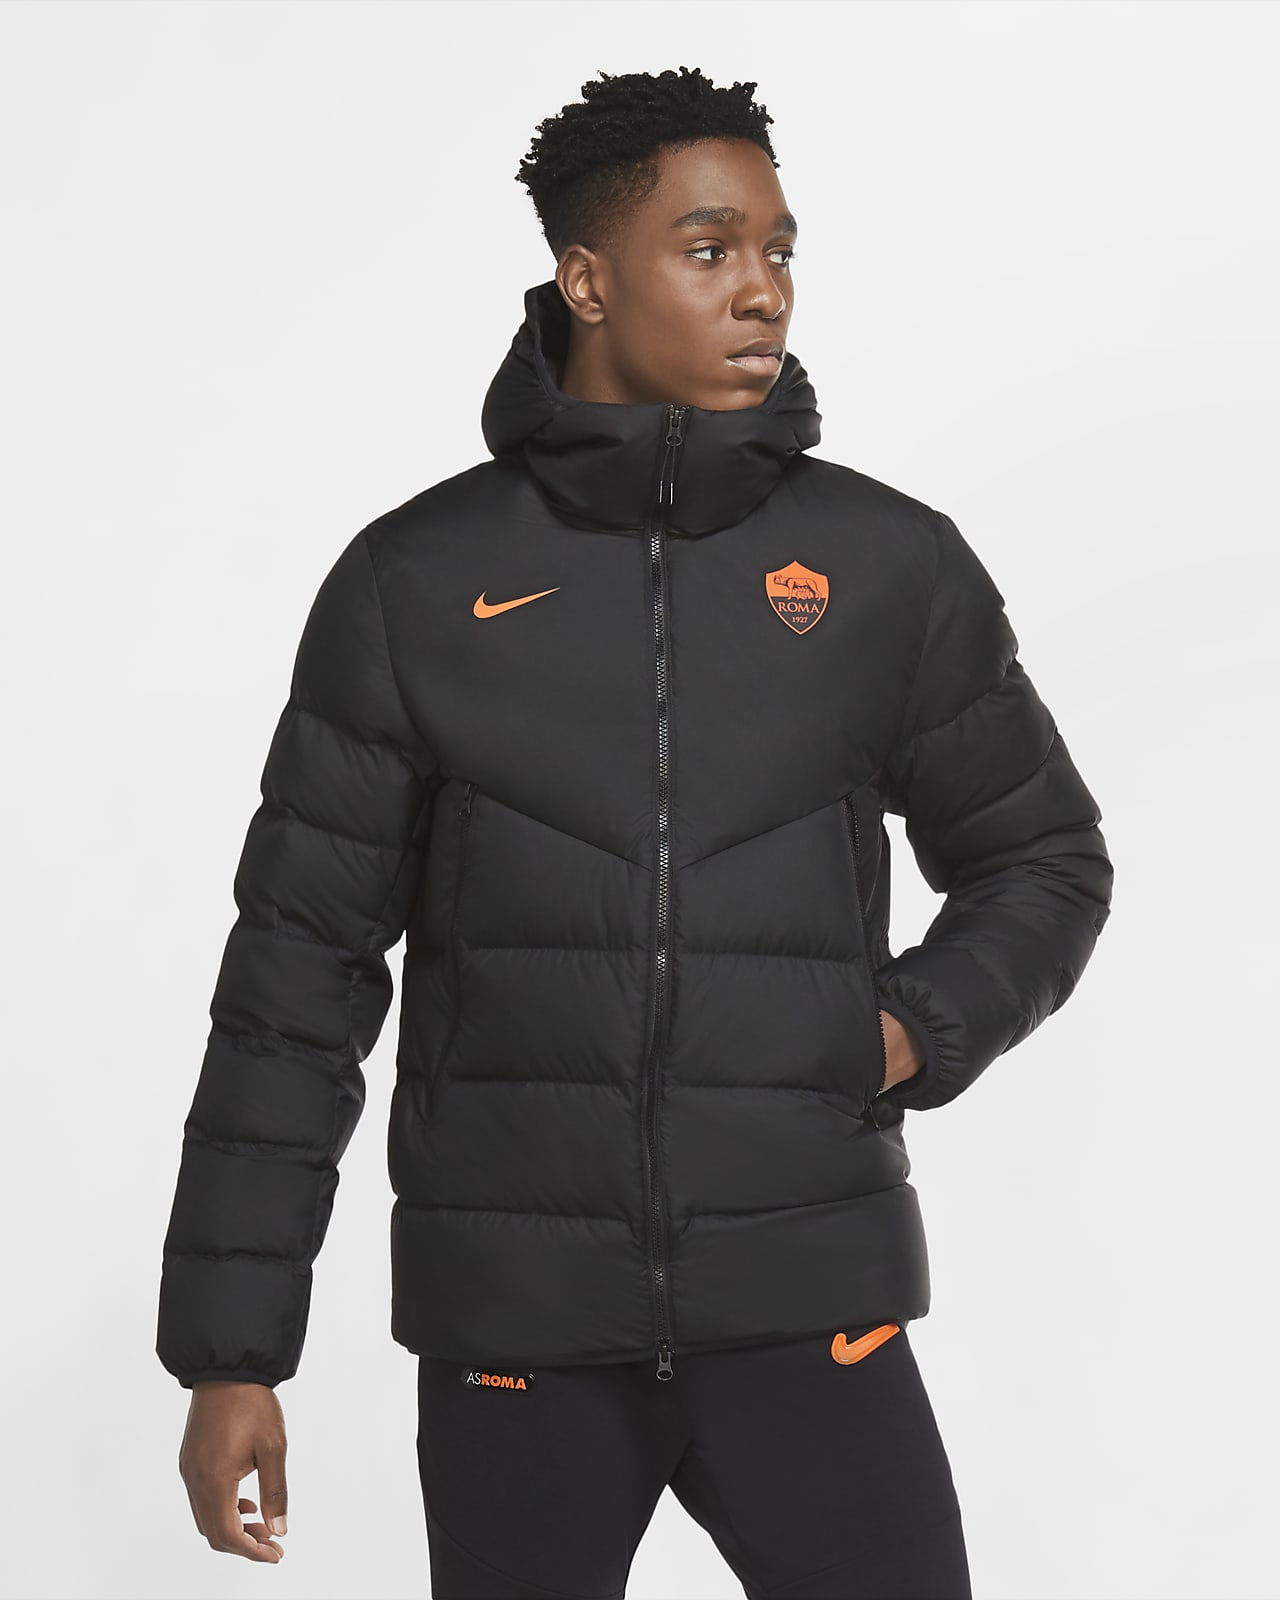 AS Roma Strike Men's Football Jacket